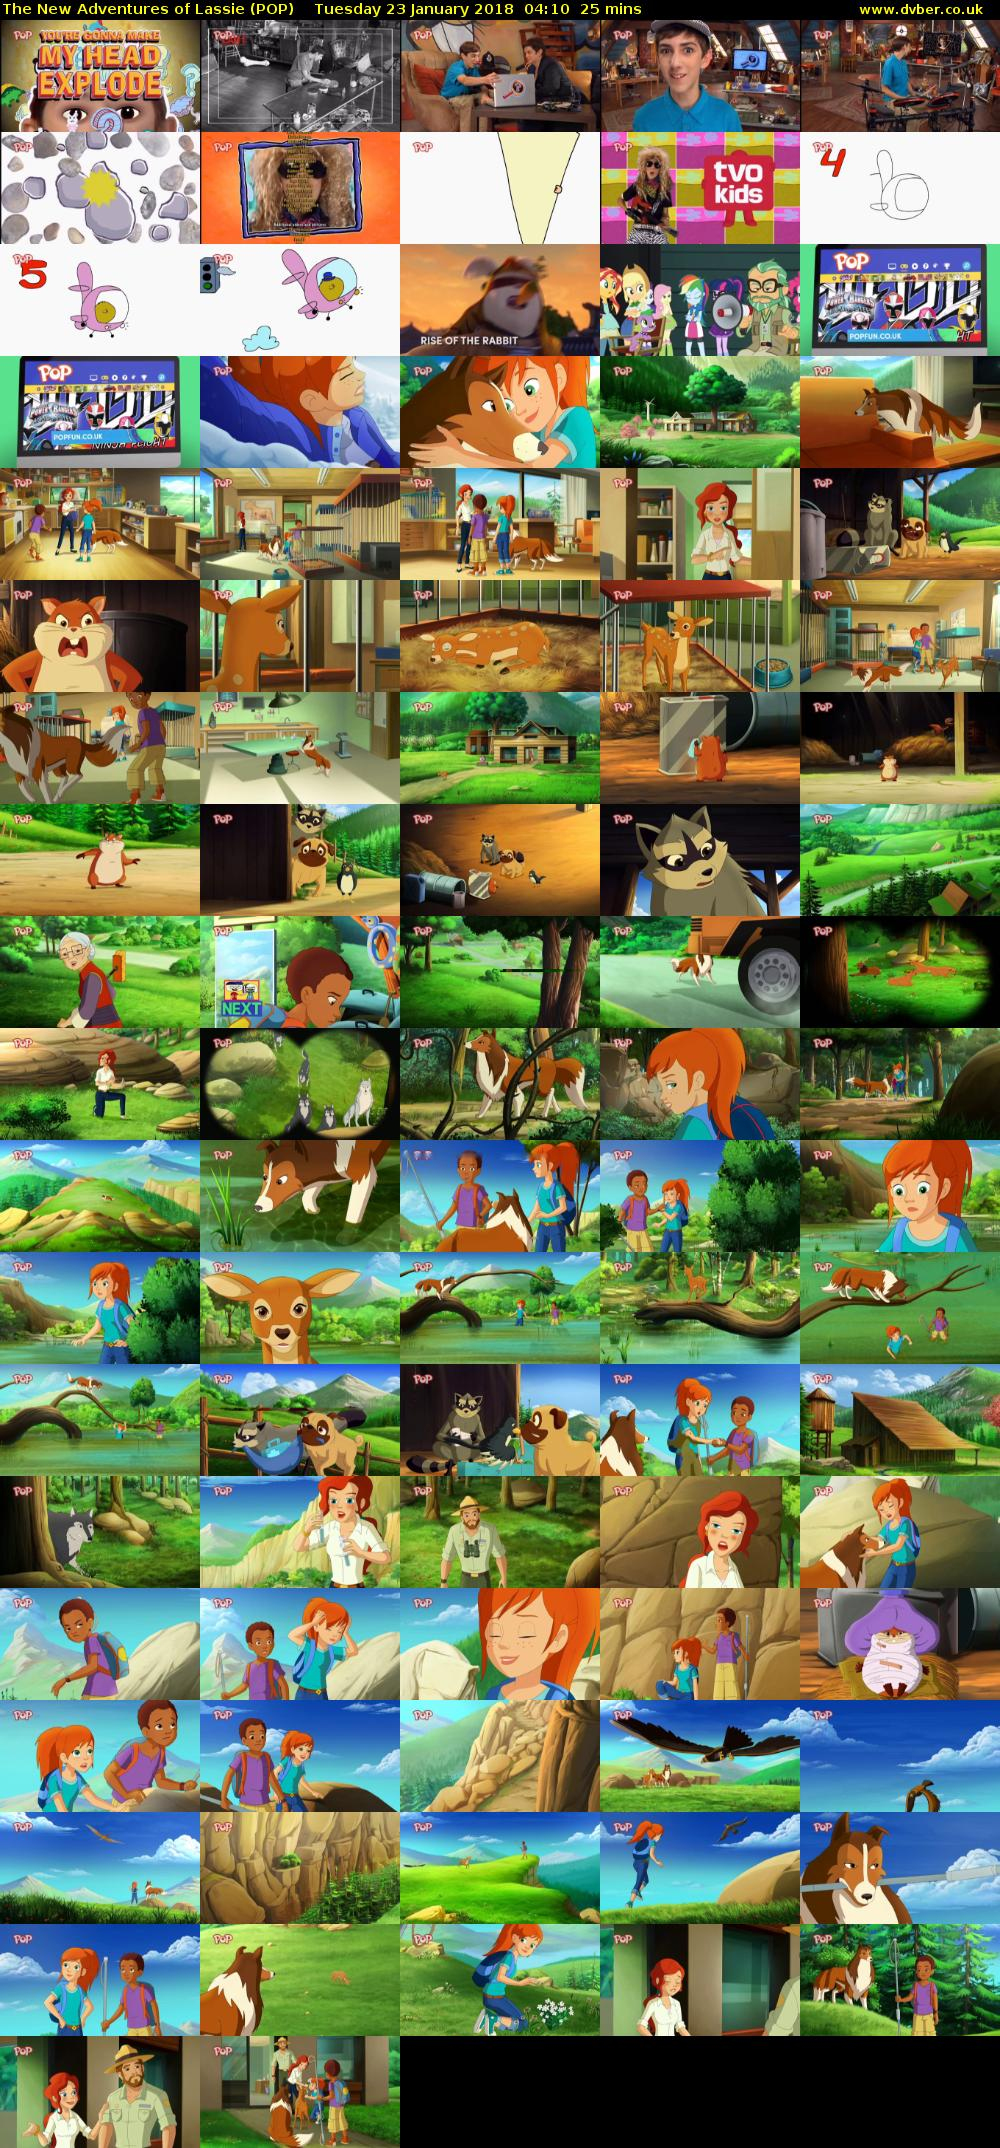 The New Adventures of Lassie (POP) Tuesday 23 January 2018 04:10 - 04:35